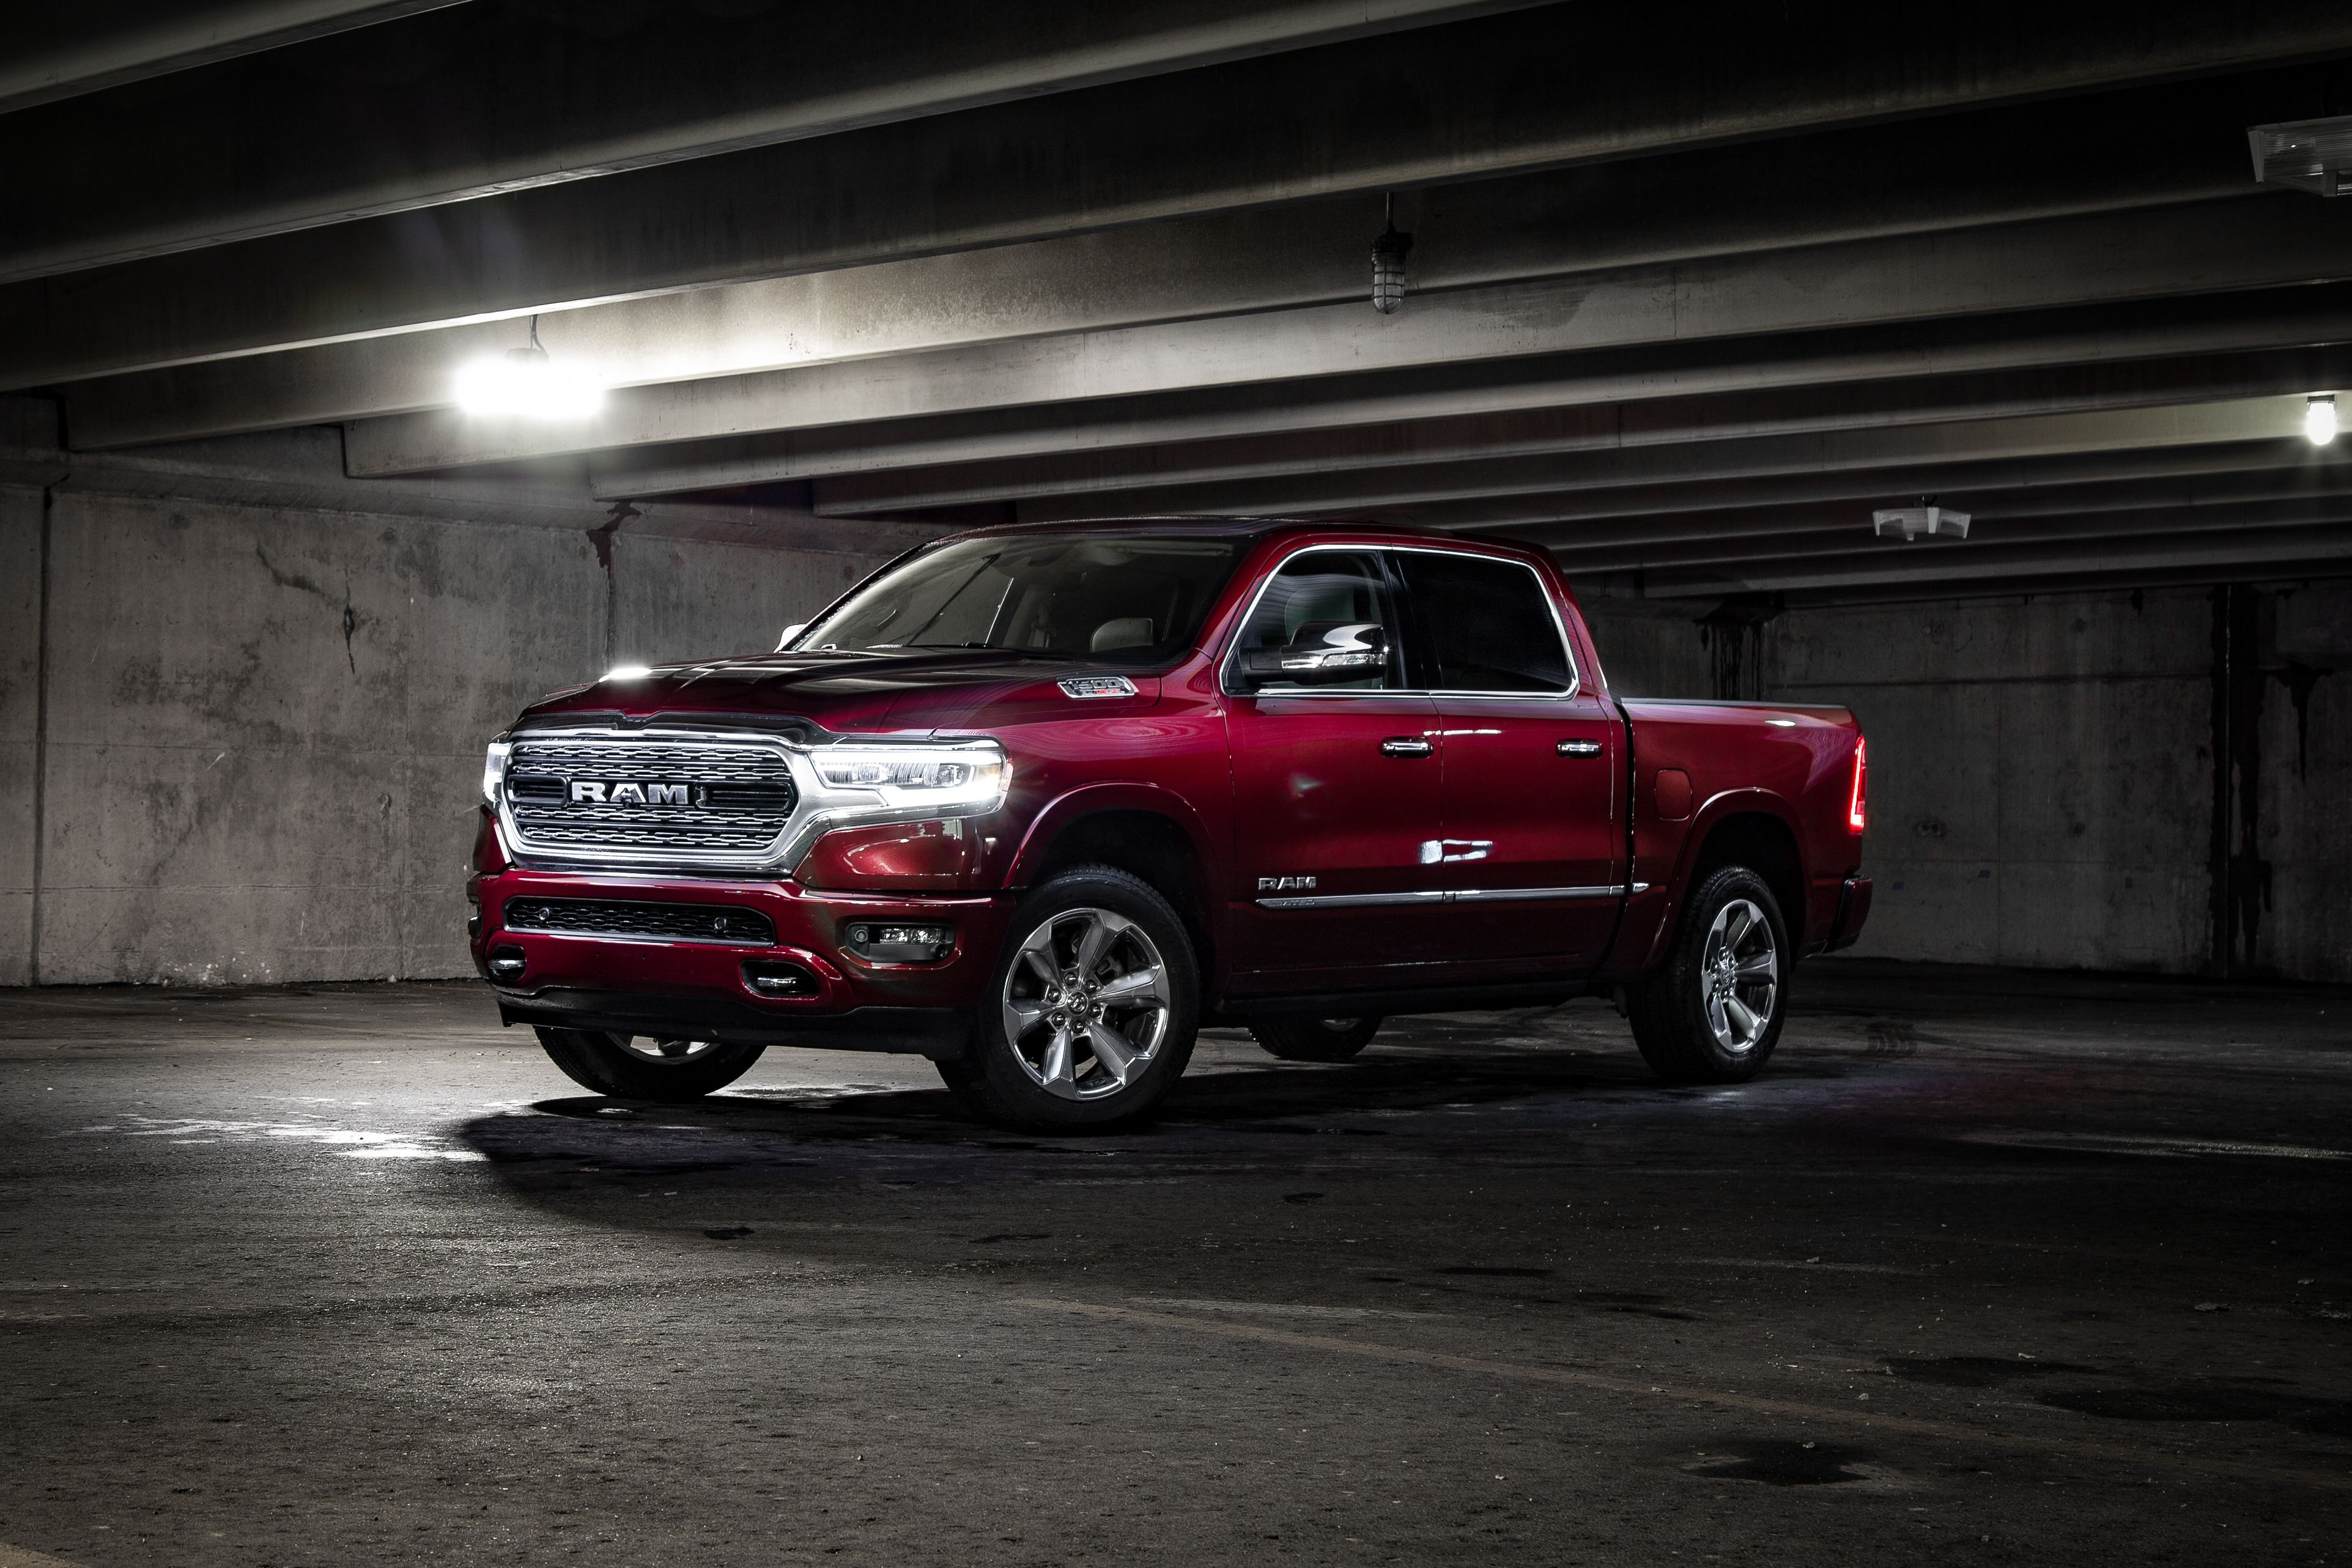 2020 Ram 1500 Ecodiesel Misses Its Epa Highway Rating In Our Testing